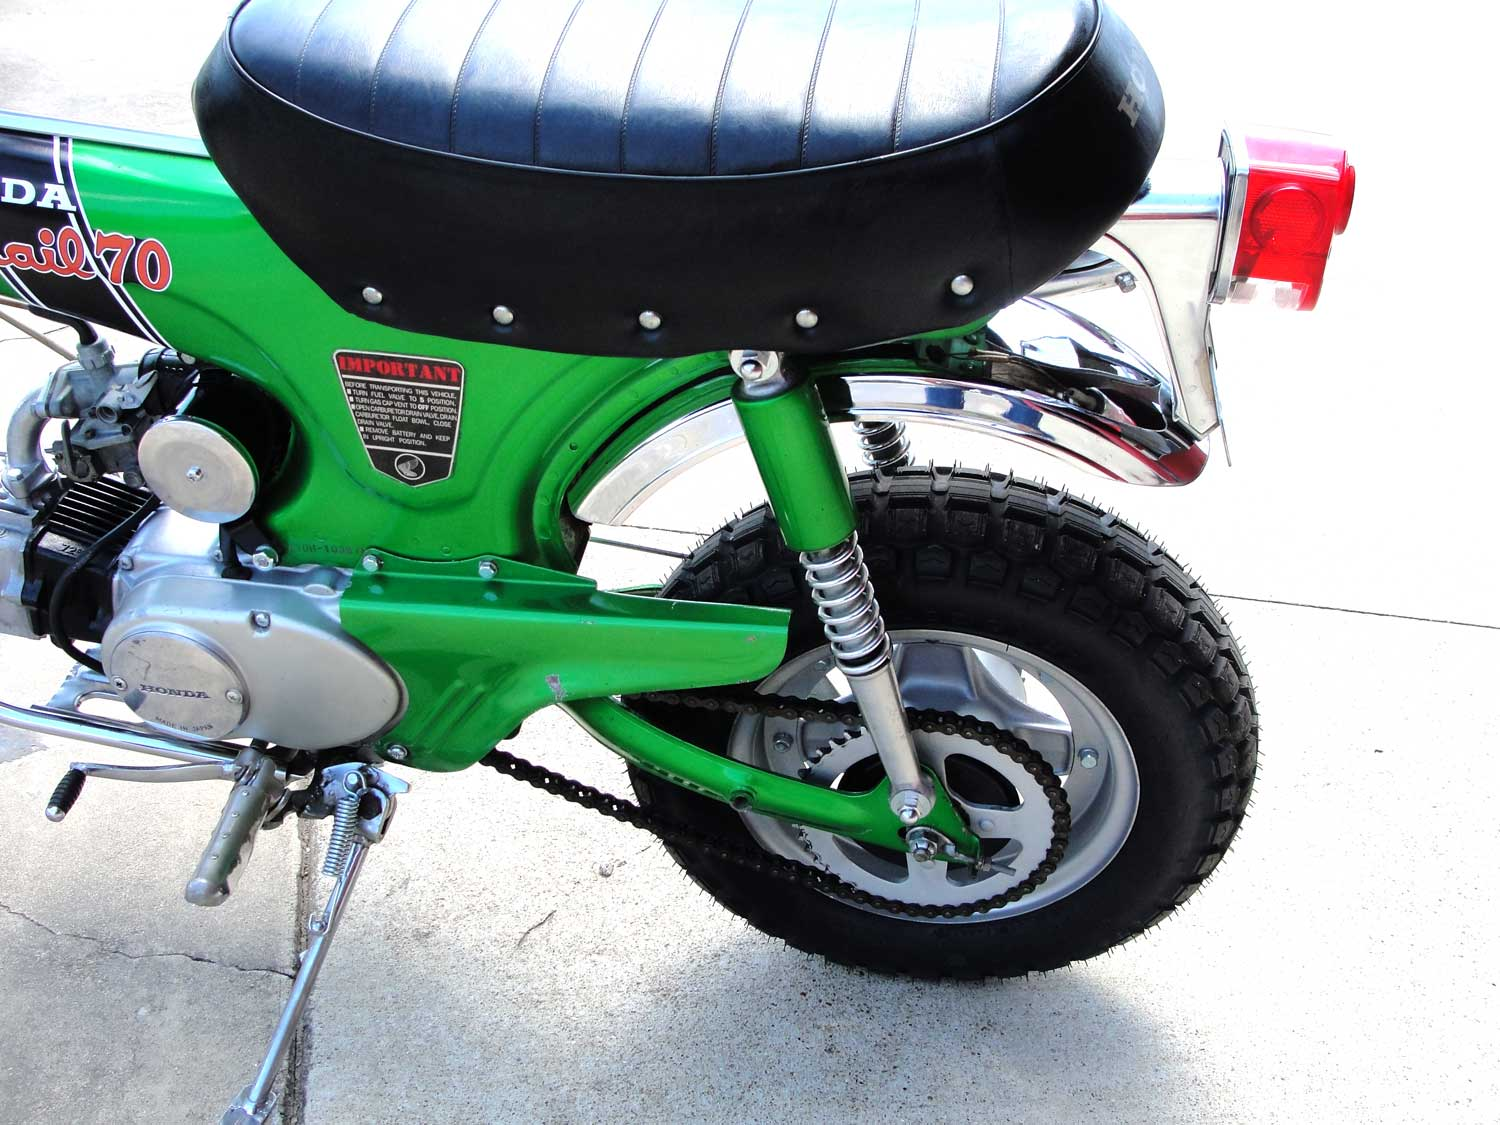 Bfs Ct70 H Ko Original Shriner Bike 899 Miles Emerald Green With 1970 Honda Paint If You Have Any Question About This Other Of The Bikes That We Will Be Listing Please Do Not Hesitate To Reach Out Price 467500 Sold